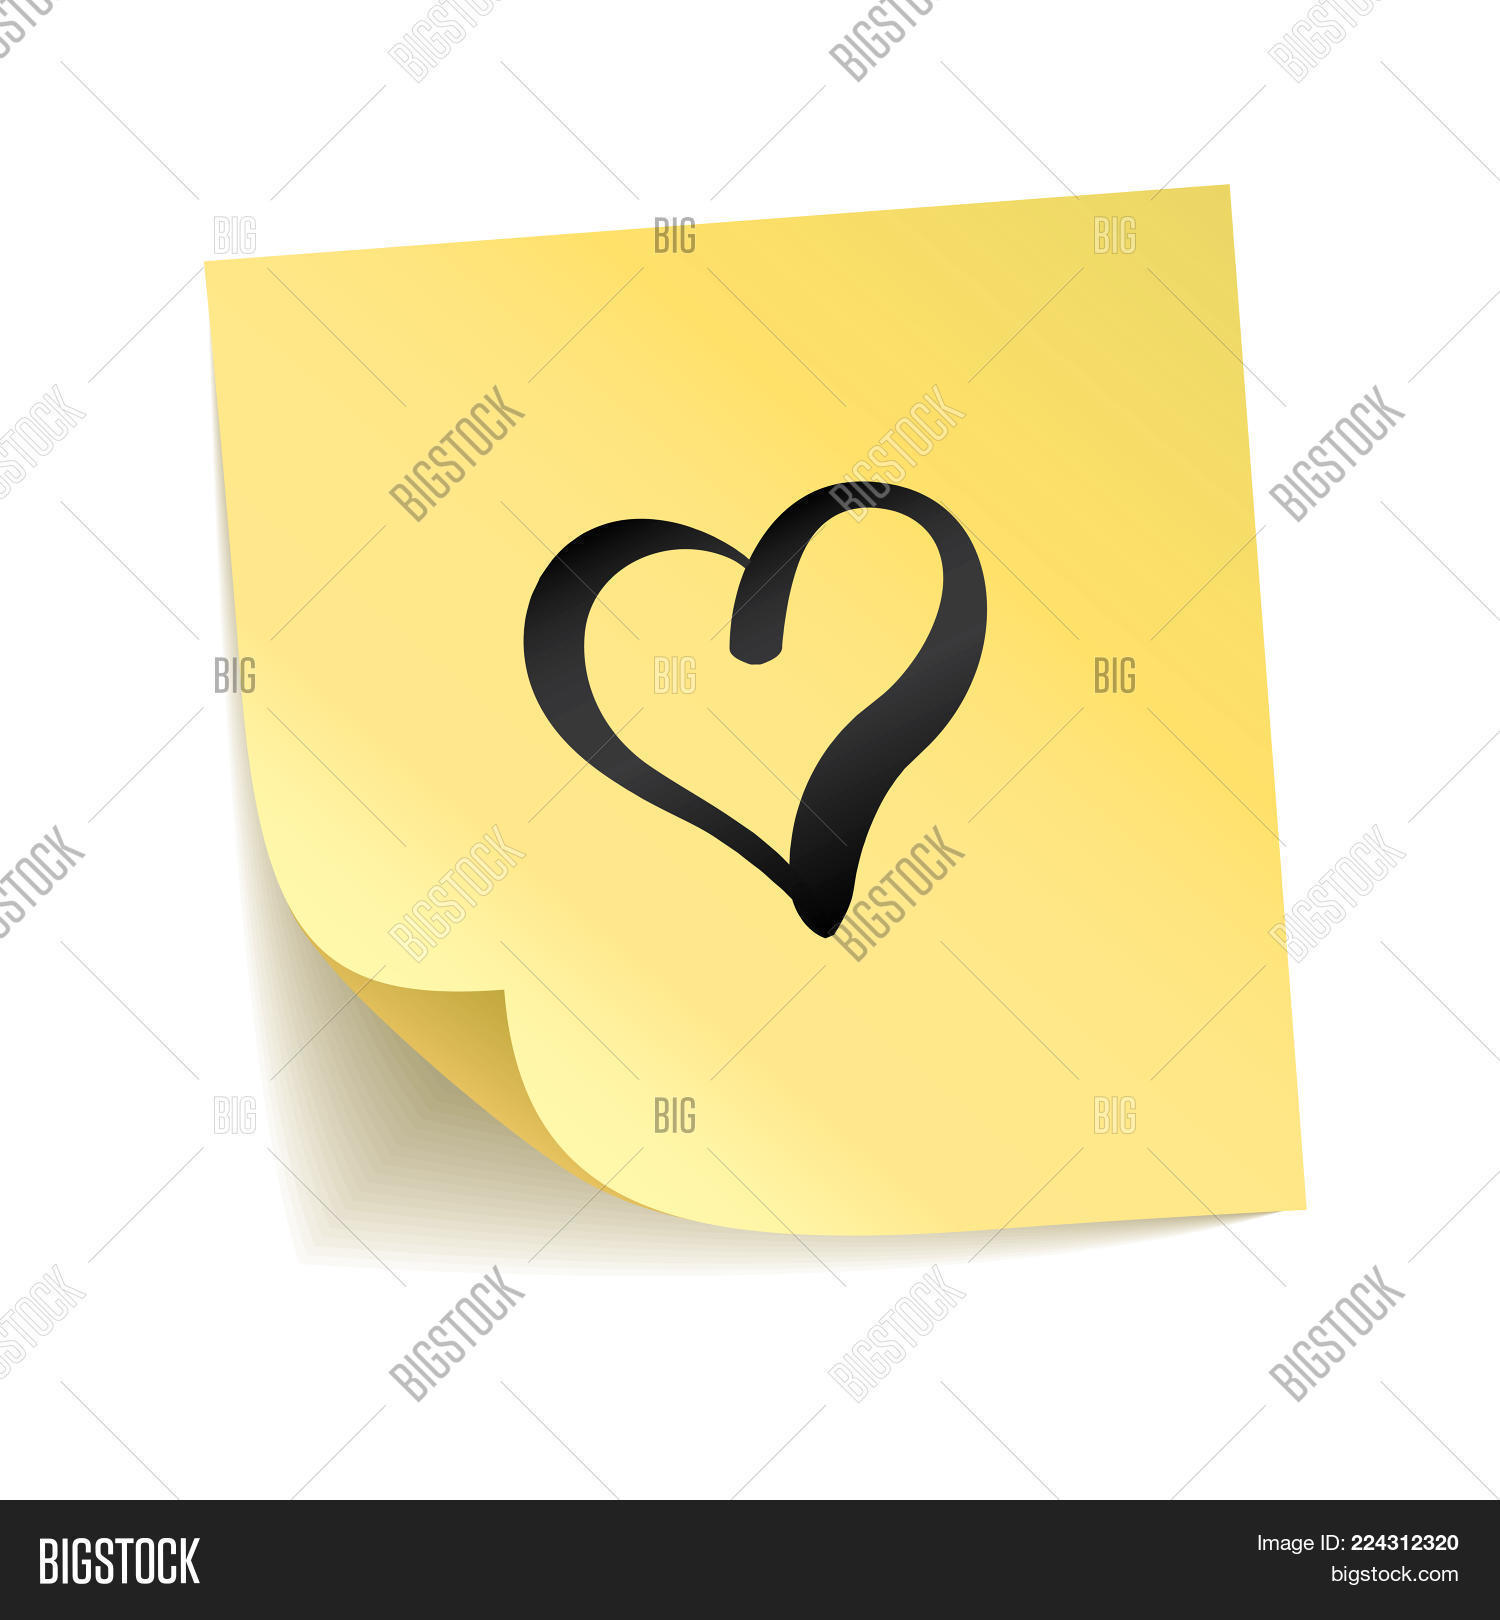 Note Yellow Sticker Image Photo Free Trial Bigstock